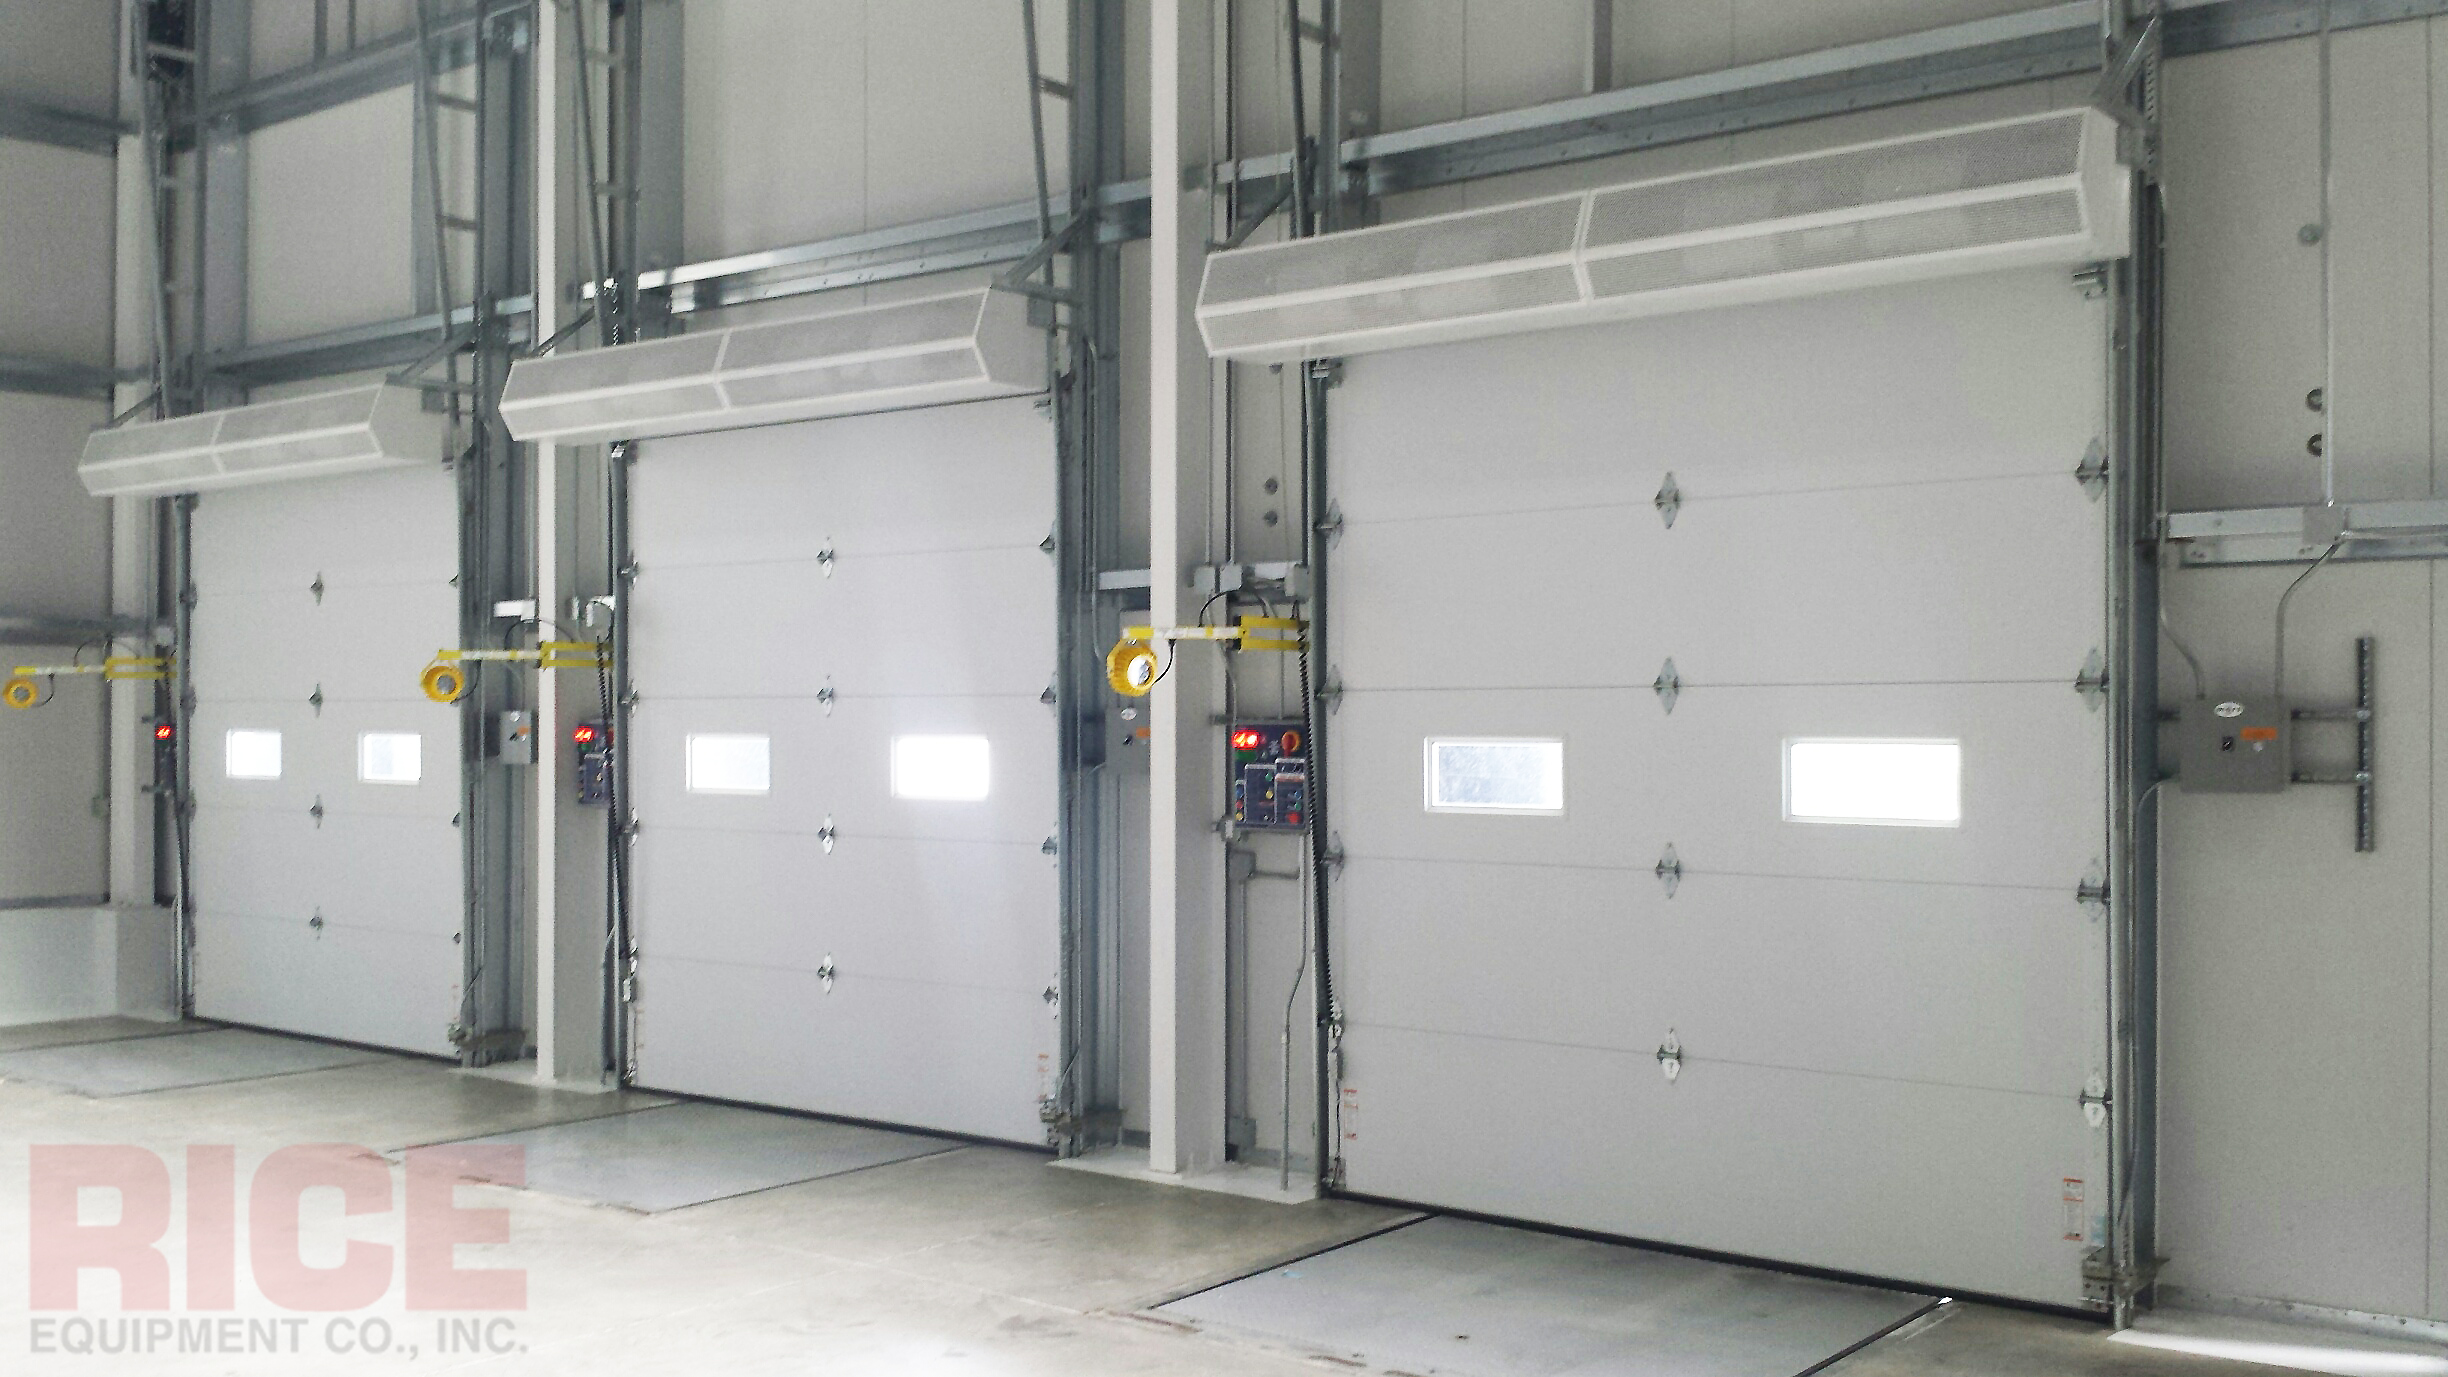 Air Curtains — Rice Equipment Co Loading Dock & Door Service